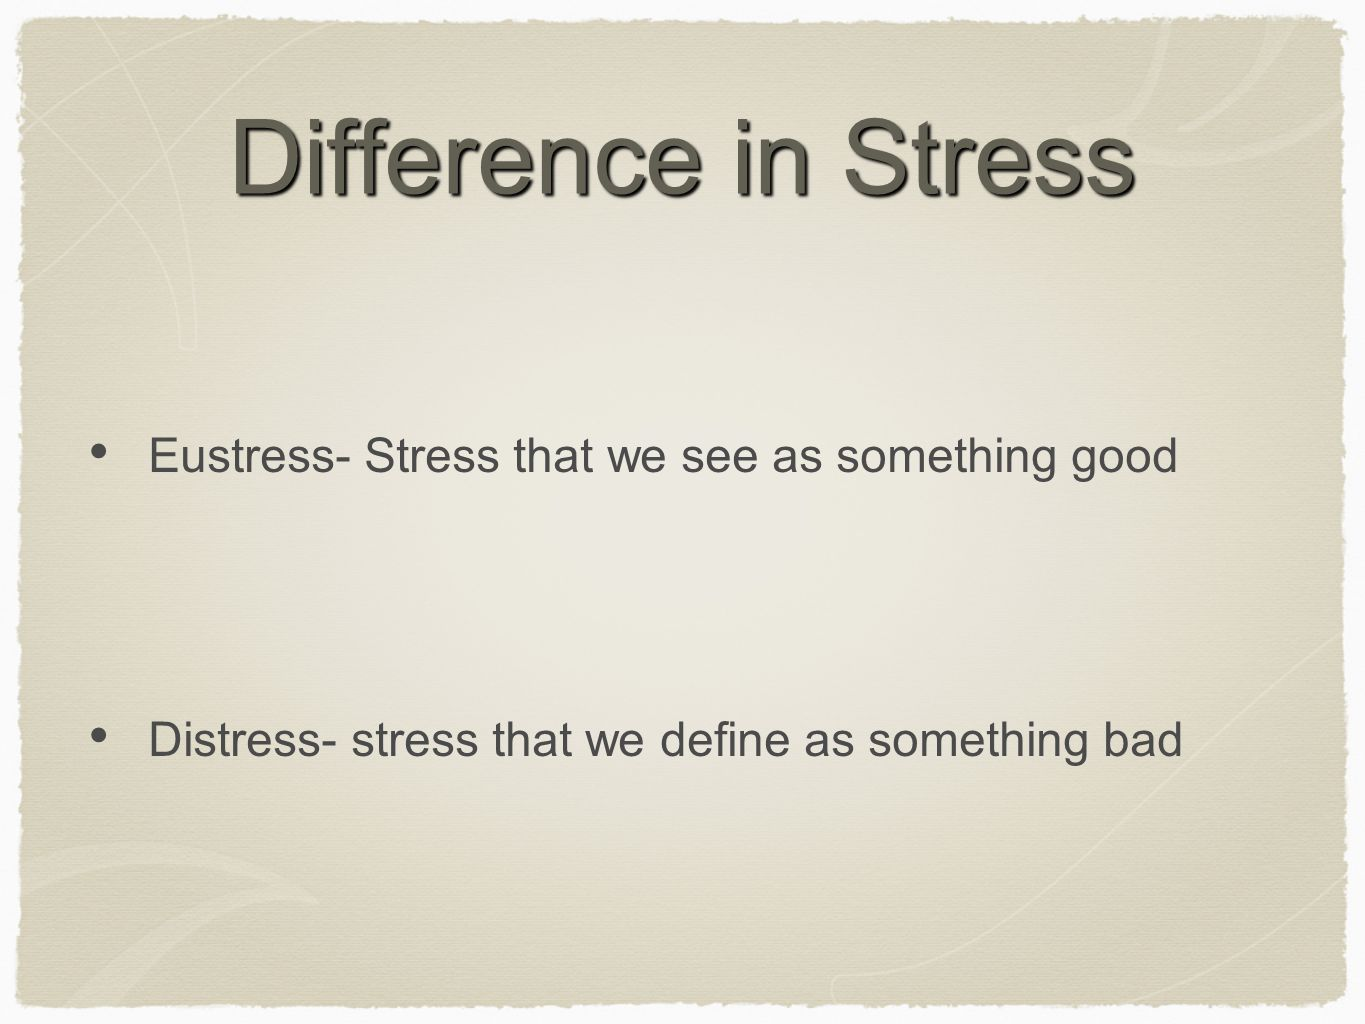 Difference in Stress Eustress- Stress that we see as something good Distress- stress that we define as something bad